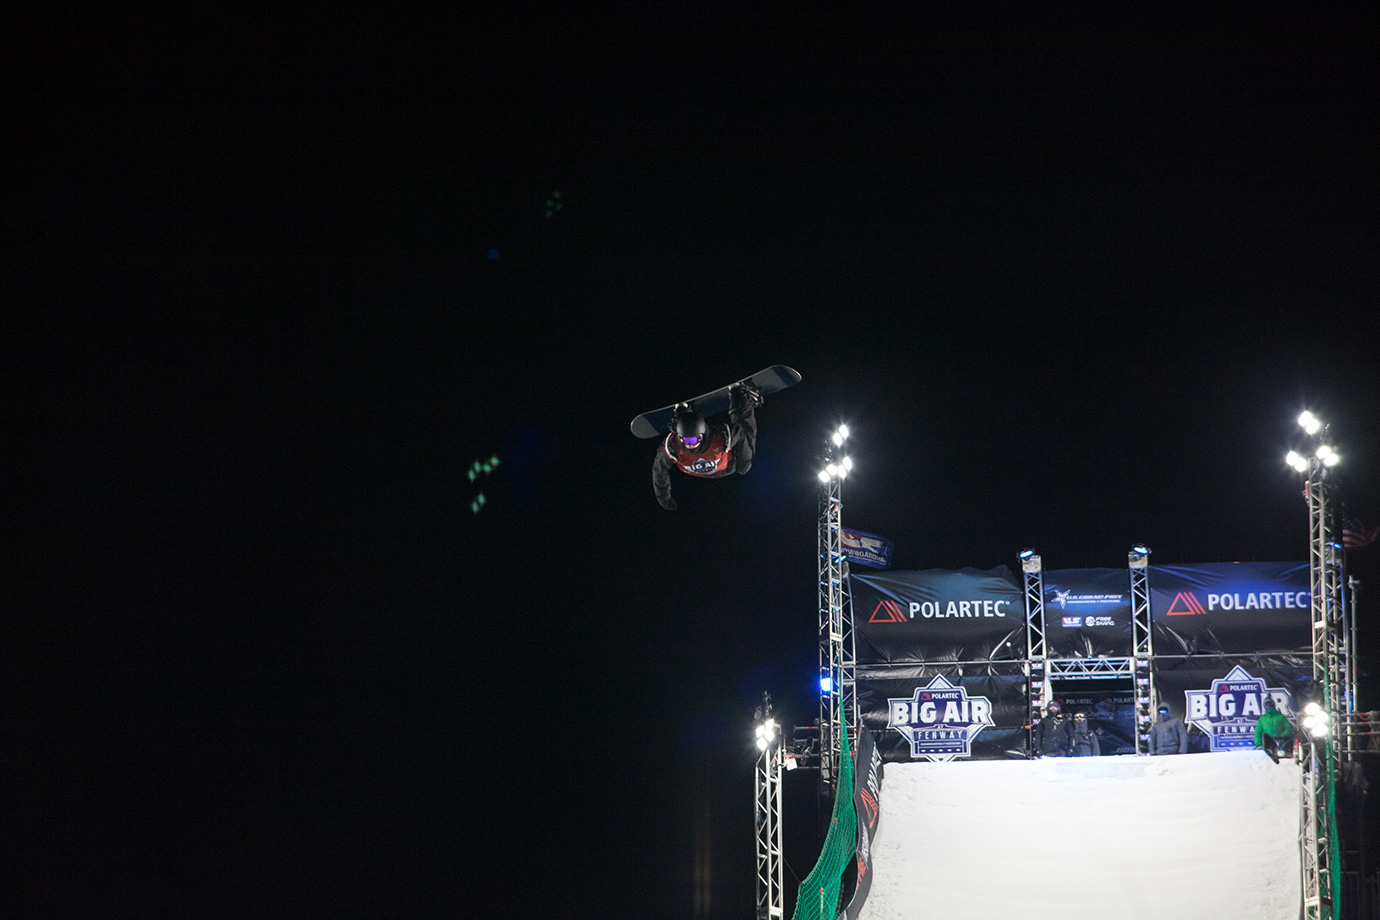 Max Parrot flies over Fenway Park during his third run and the final run of the night.